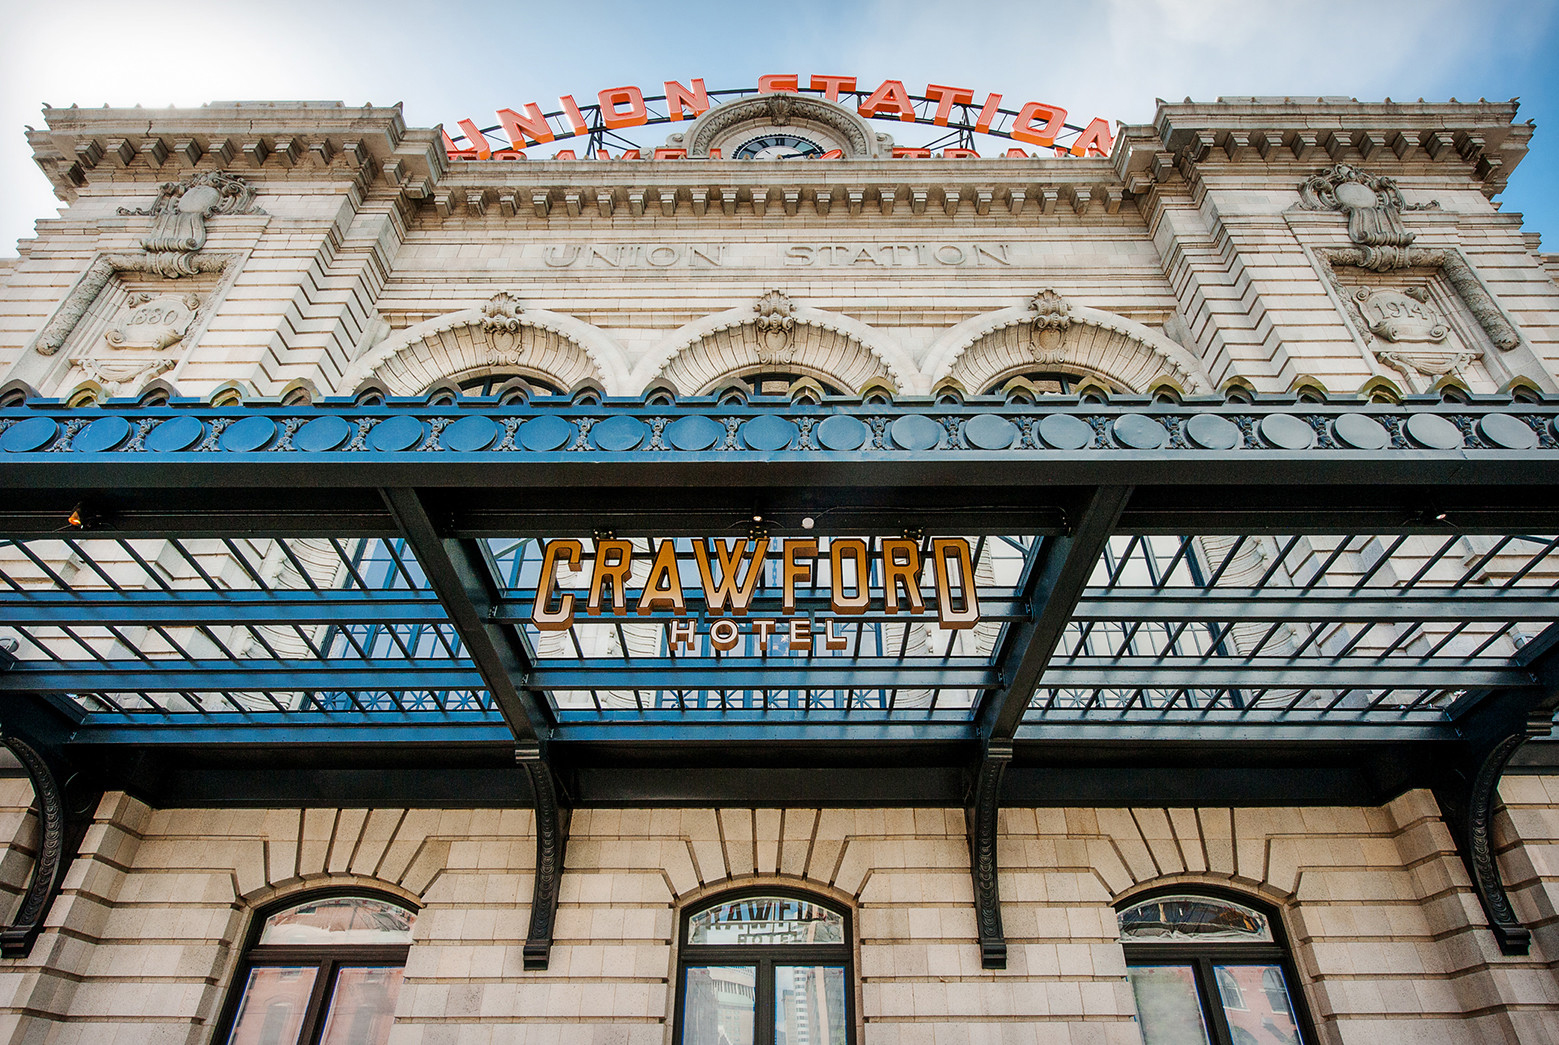 Iconic Denver Union Station Transformed Into The Crawford Hotel